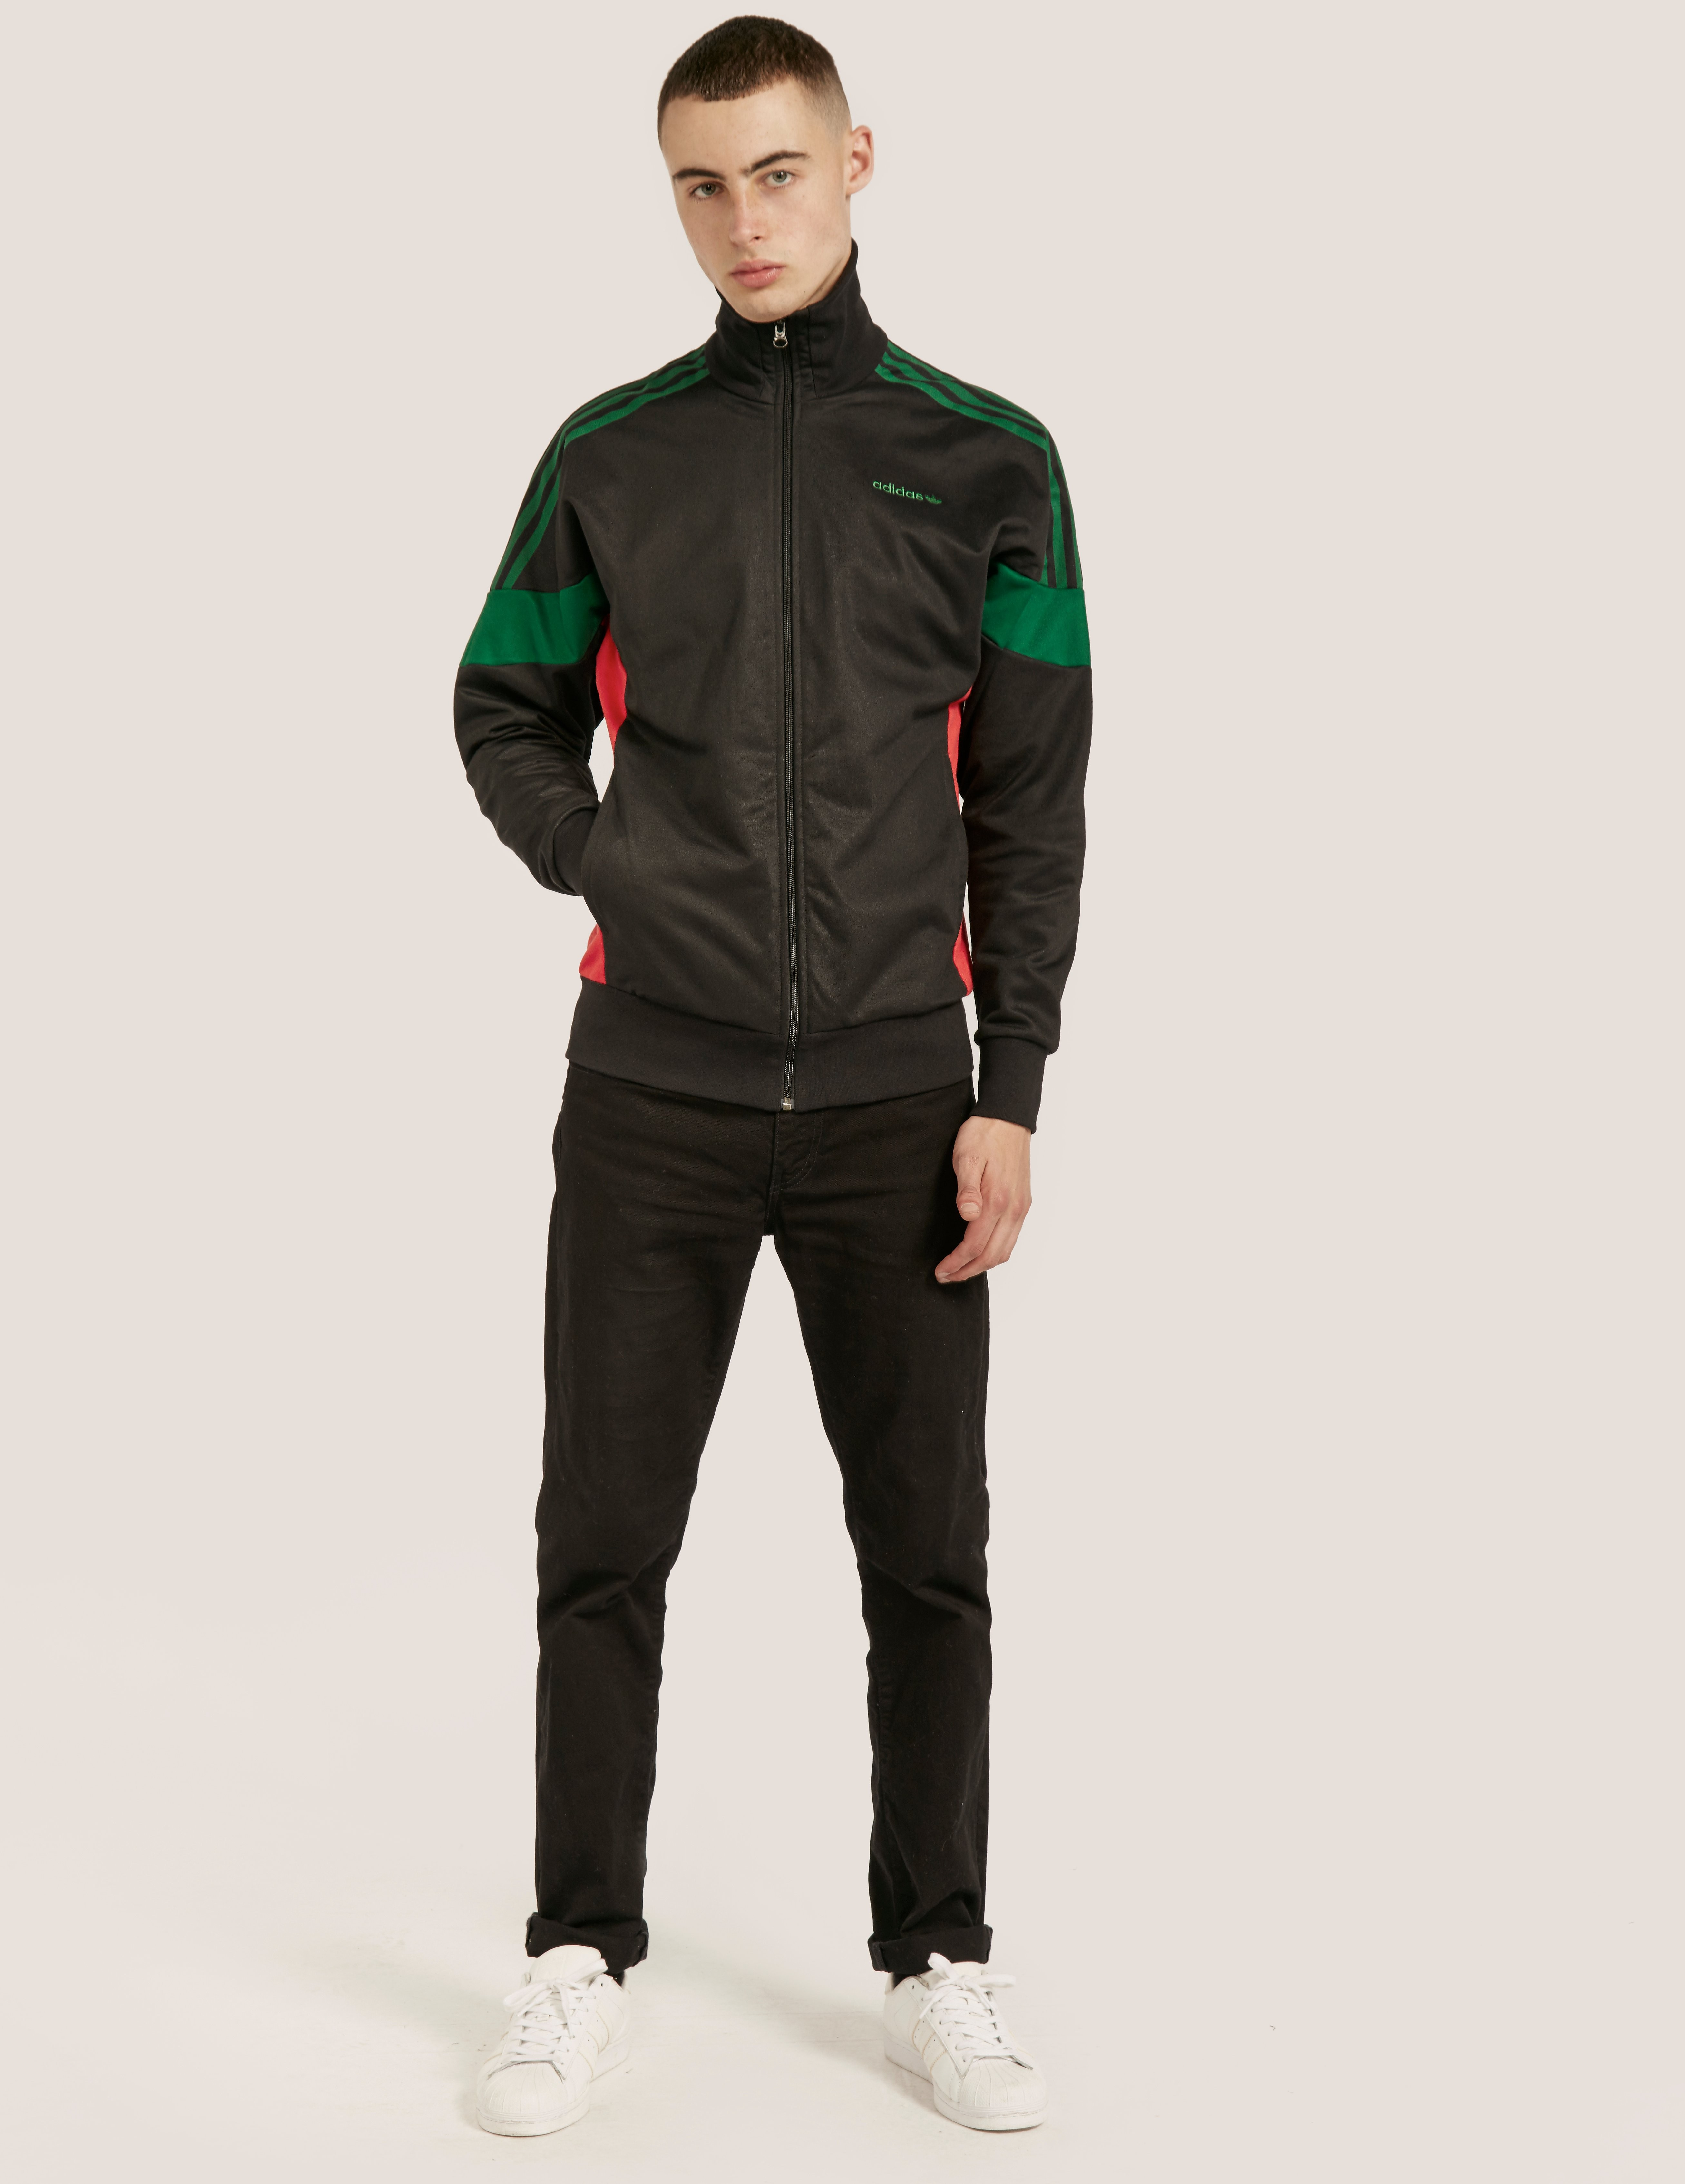 adidas Originals Challenger Track Top